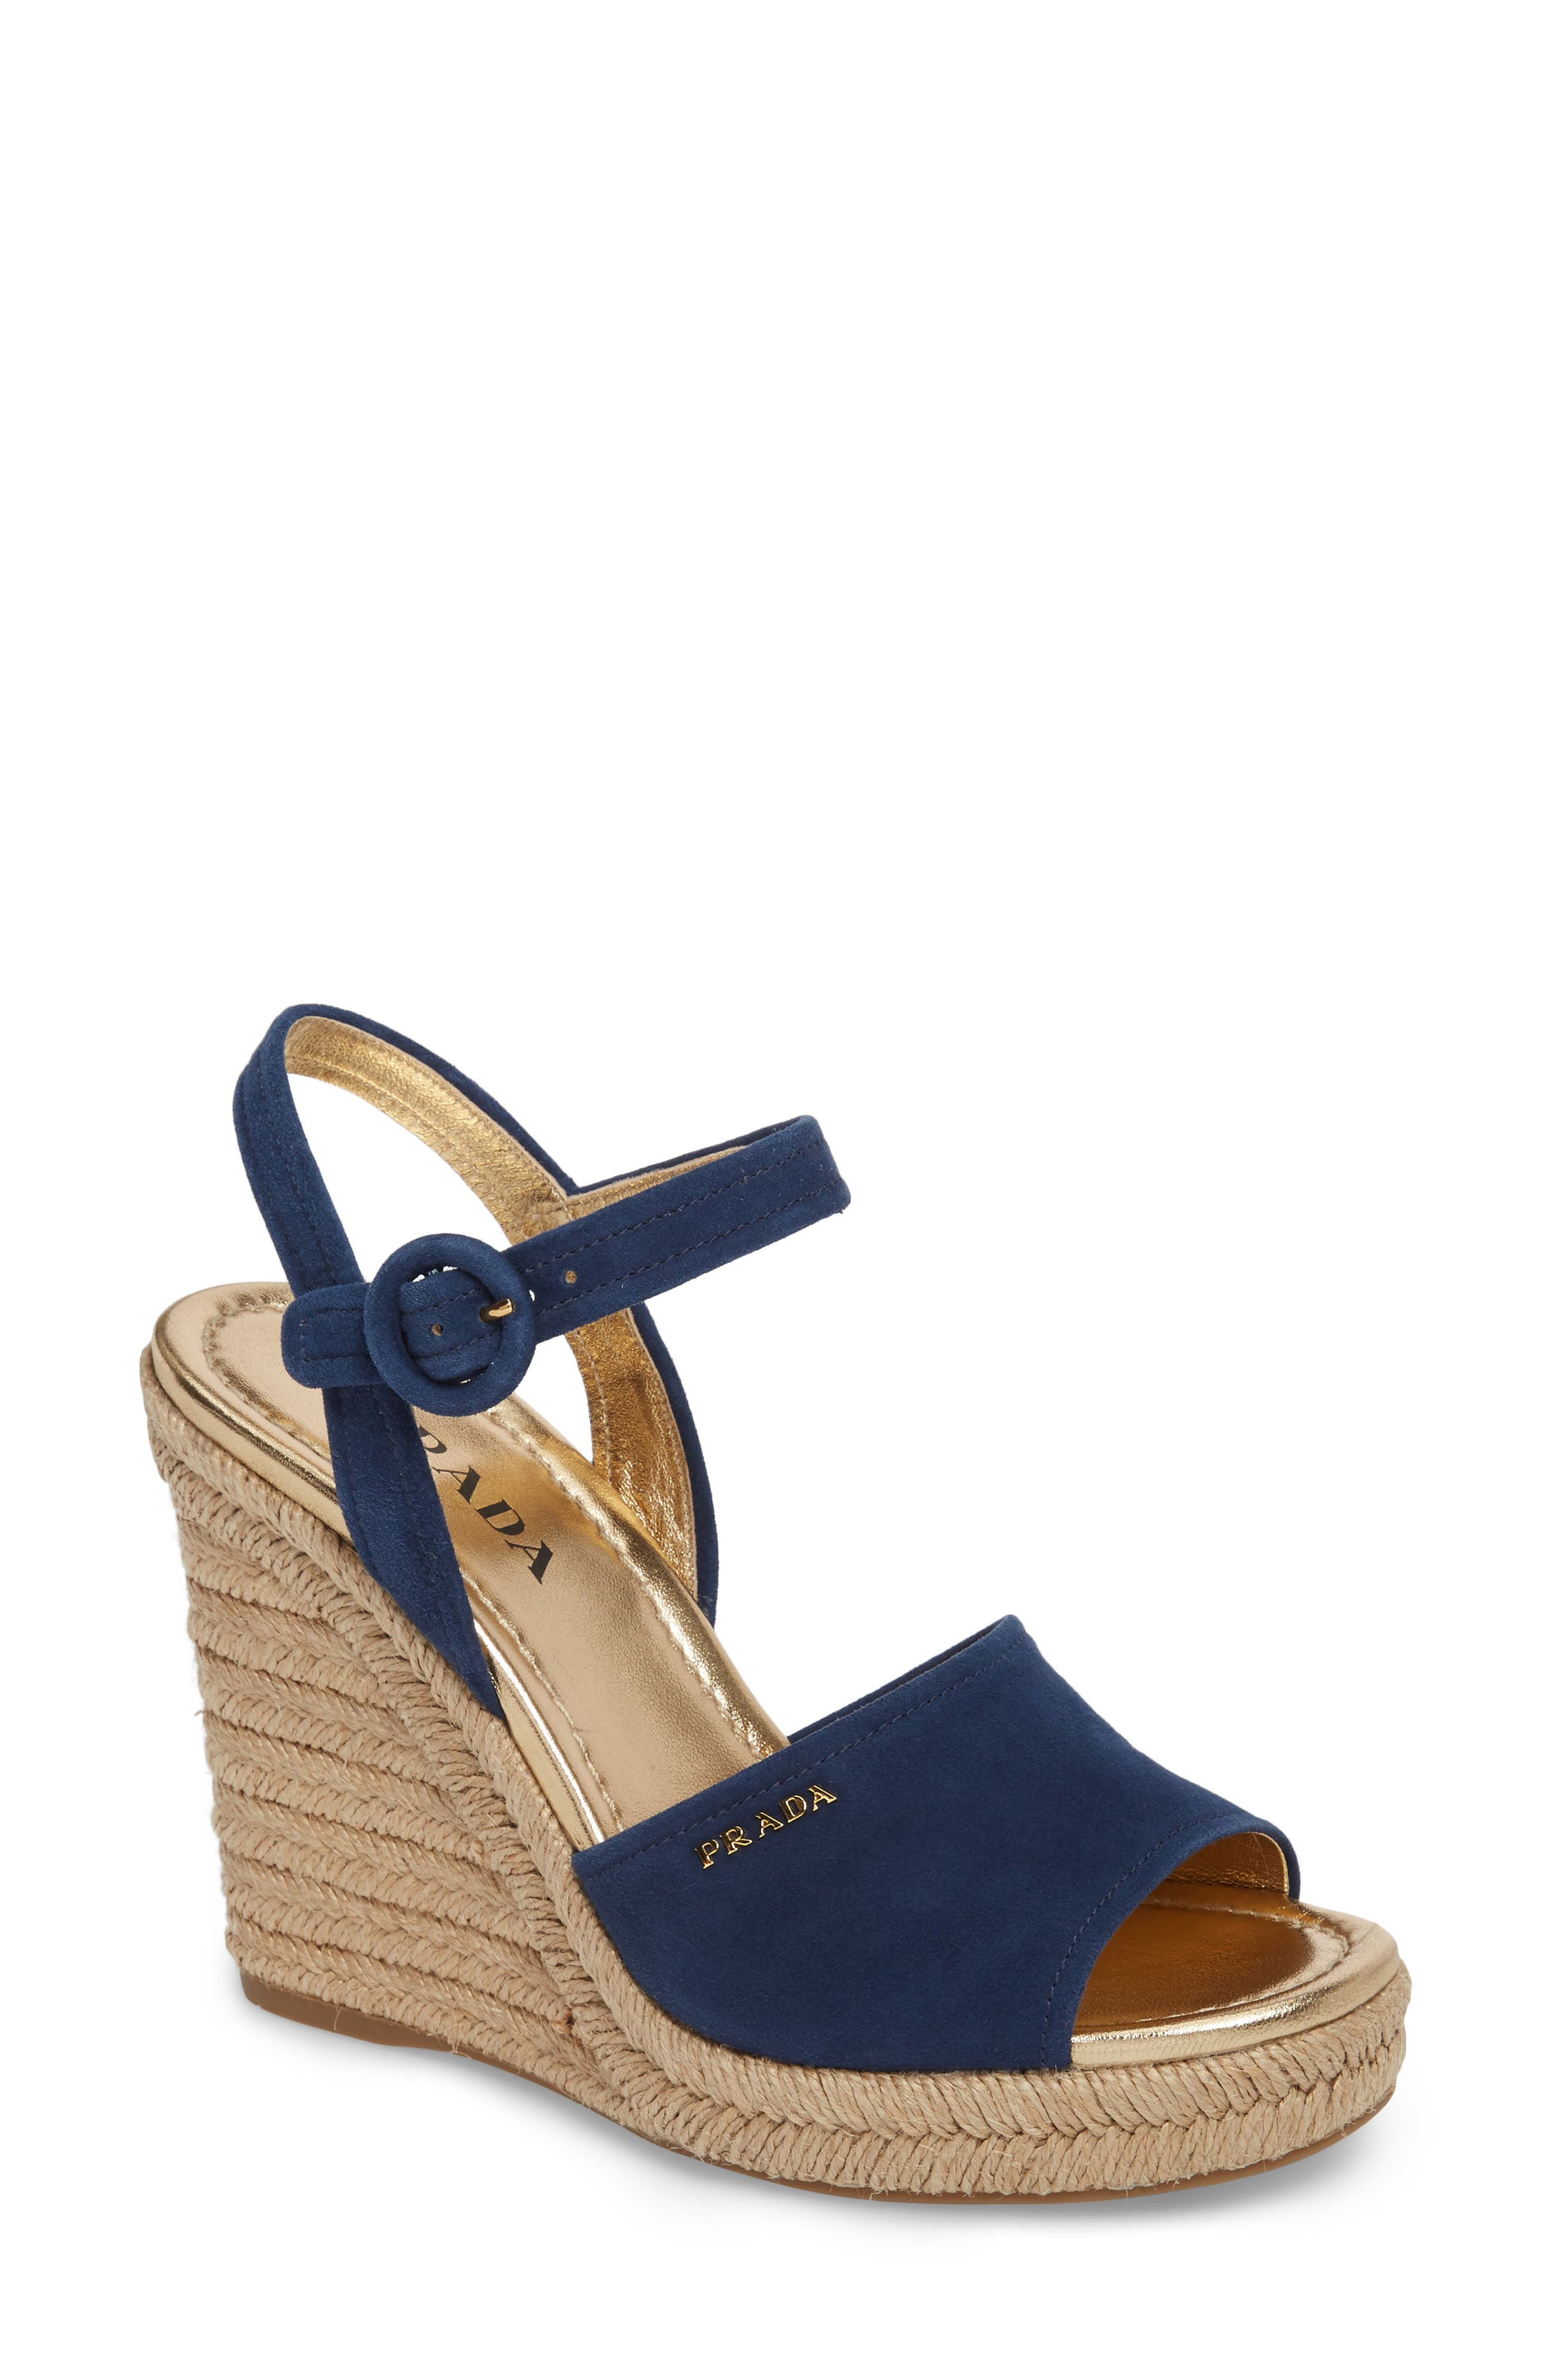 Prada Espadrille Wedge Sandal (Women)